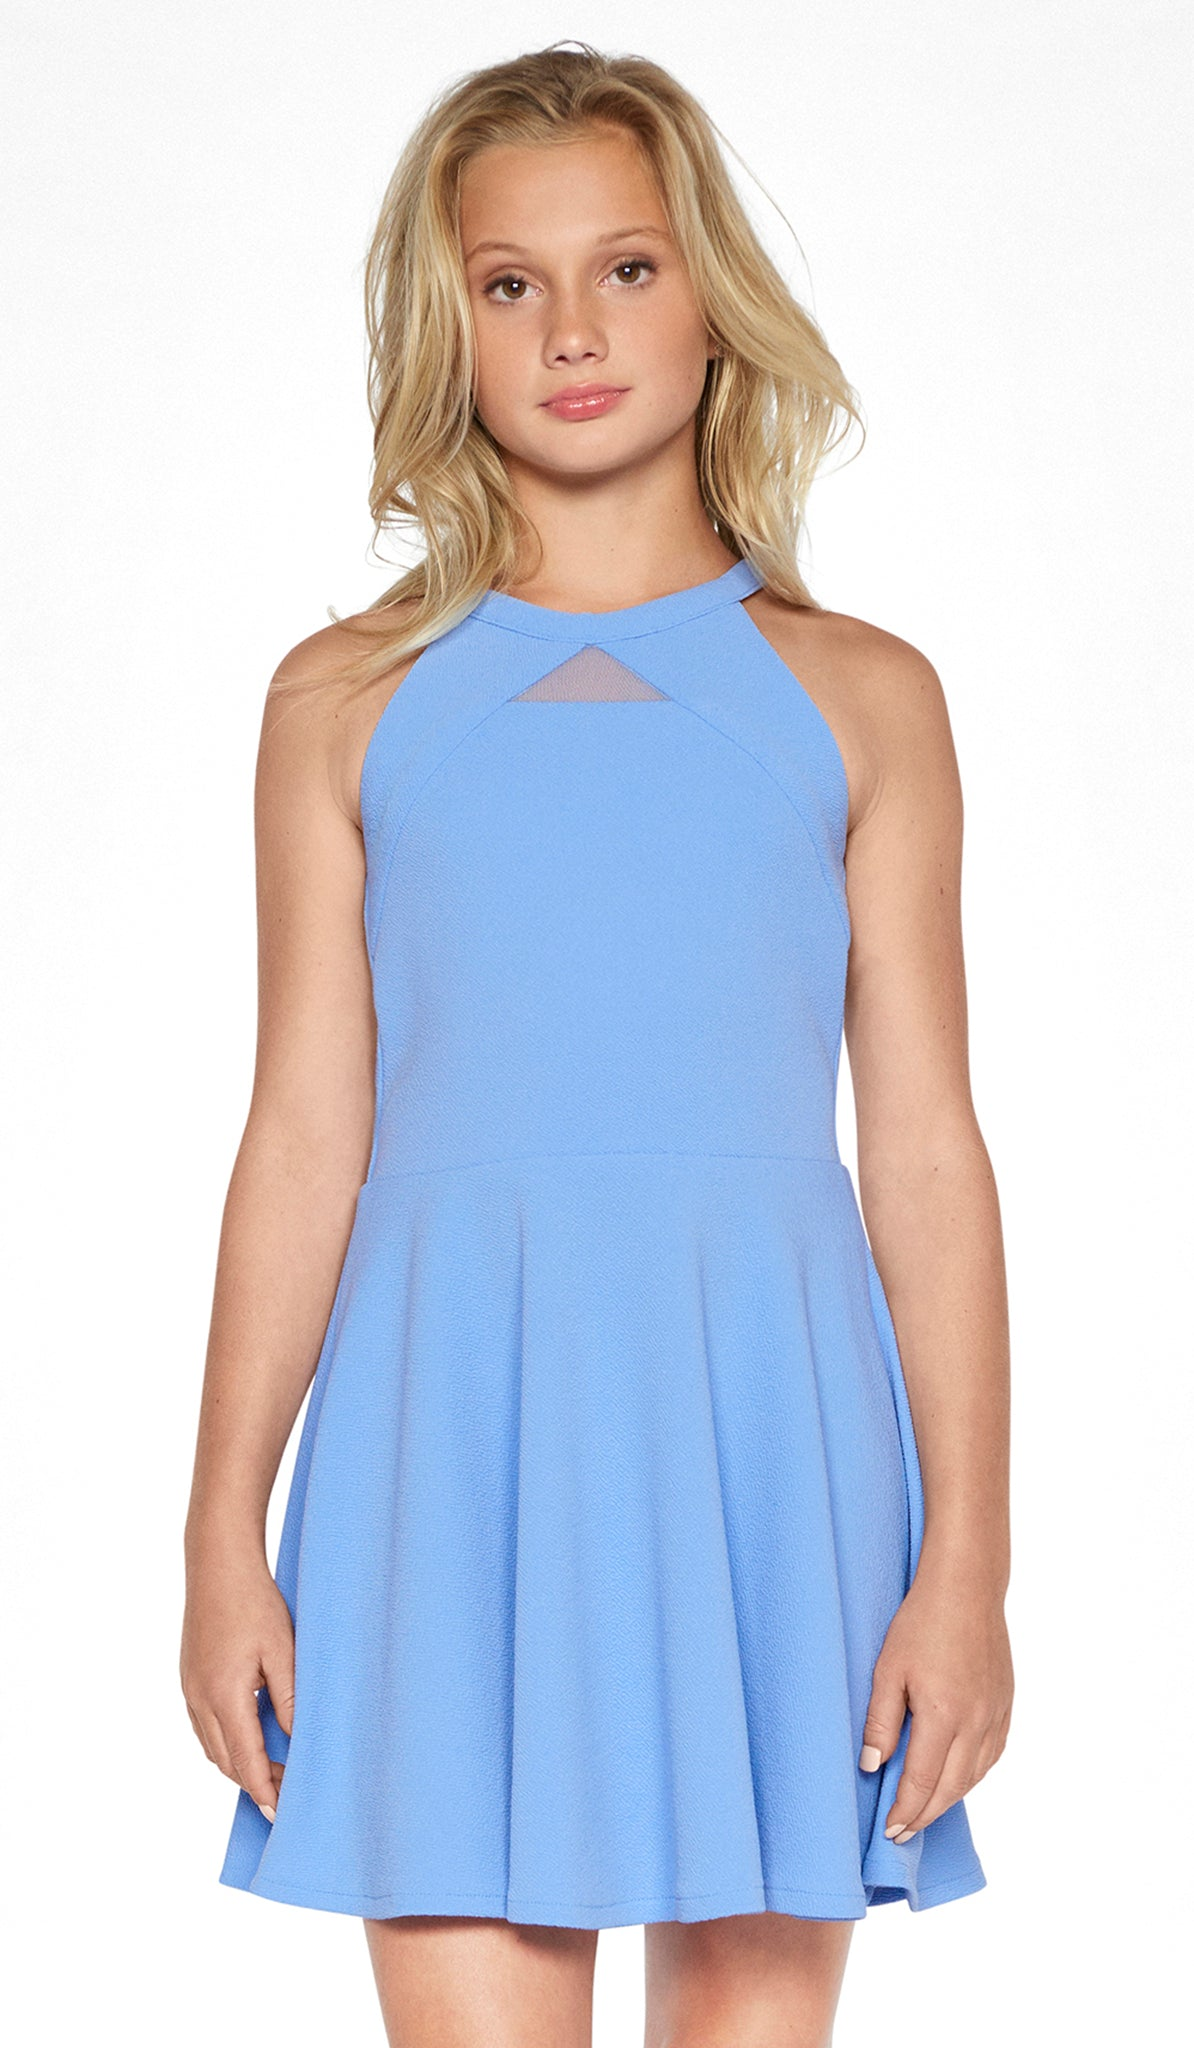 THE ELISE DRESS - Sallymiller.com - [variant title] - | Event & Party Dresses for Tween Girls & Juniors | Weddings Dresses, Bat Mitzvah Dresses, Sweet Sixteen Dresses, Graduation Dresses, Birthday Party Dresses, Bar Mitzvah Dresses, Cotillion Dresses